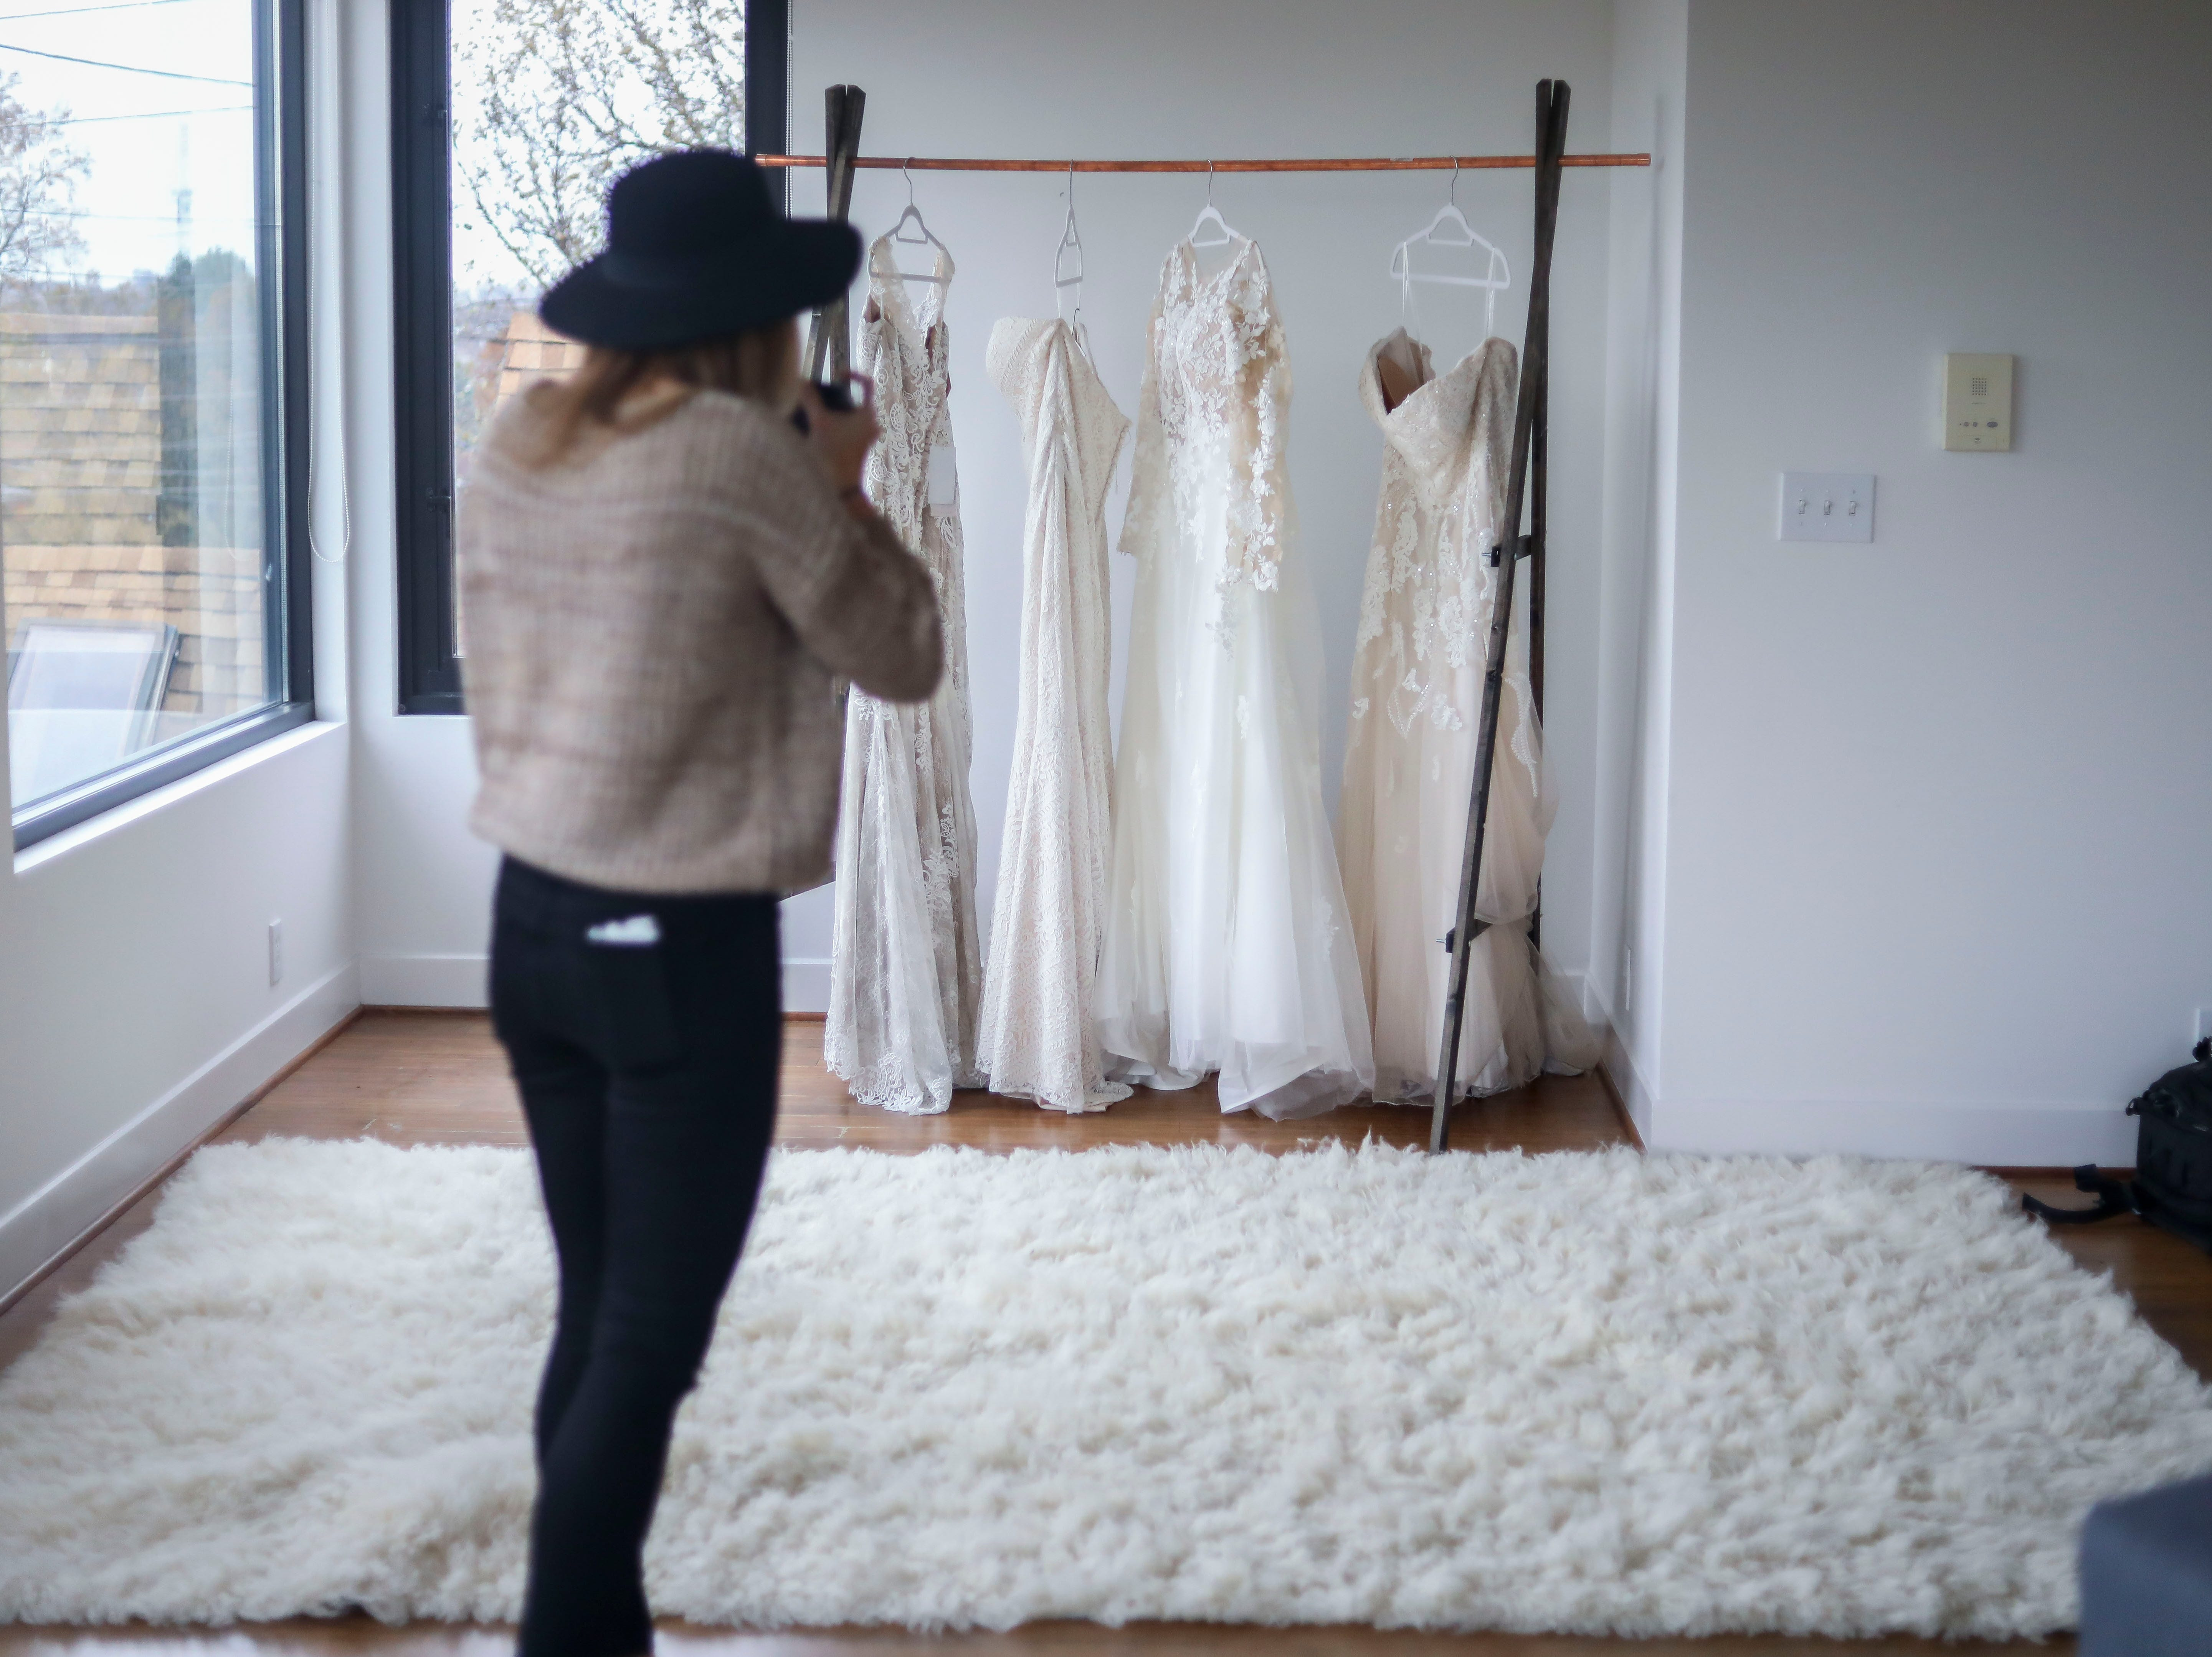 Susan Jordan of Love Hunters, tests the lighting ahead of a Couture Closet Bridal photoshoot featuring brides in their actual wedding dresses in NuLu in Louisville, Ky. on Monday, November 12, 2018.